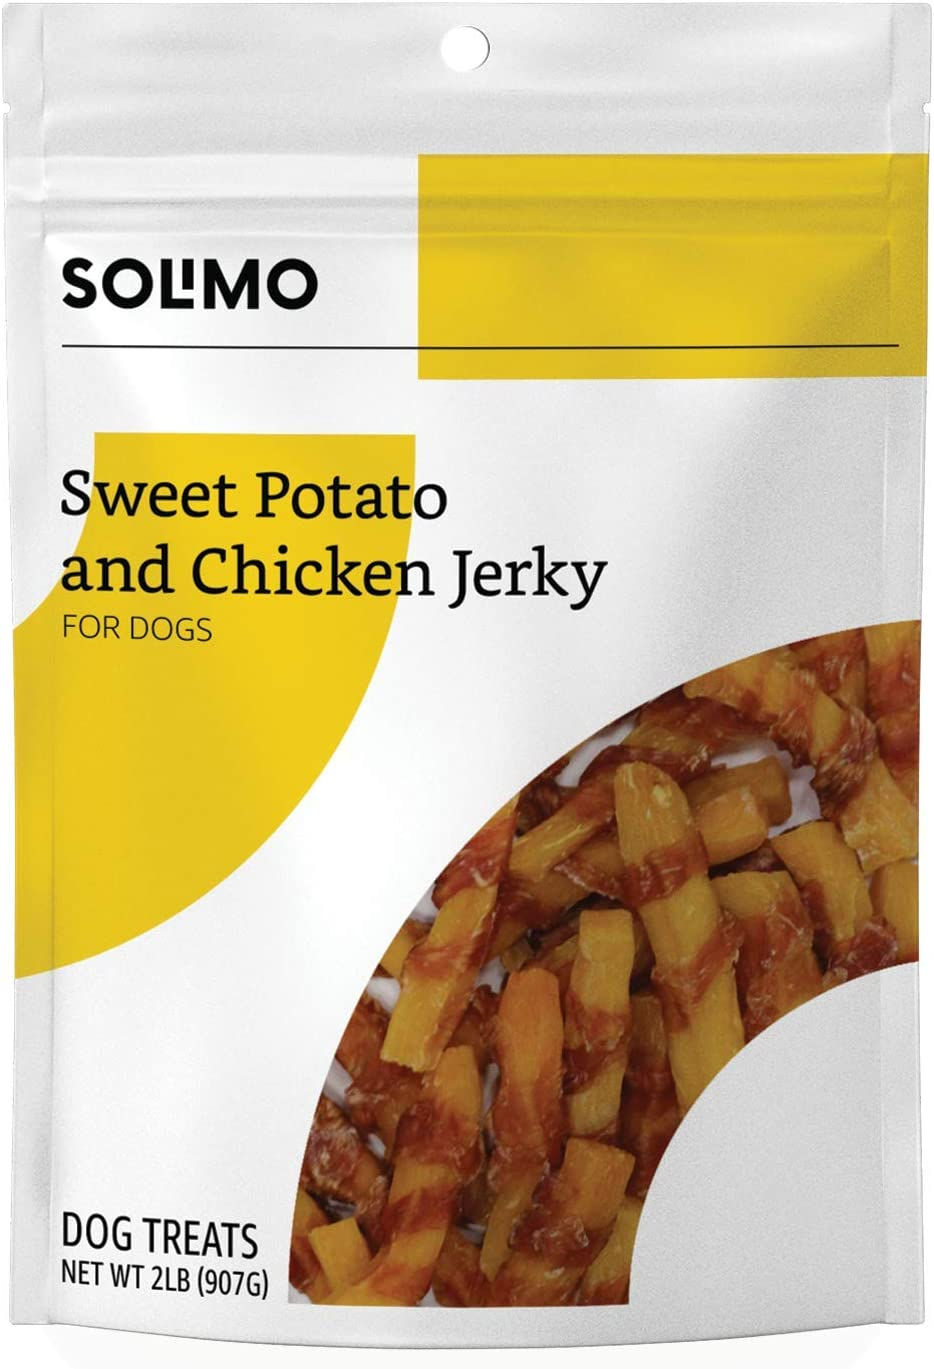 Amazon Brand - Solimo Jerky Dog Treats, 2 Lb Bag (Chicken, Duck, Sweet Potato Wraps)